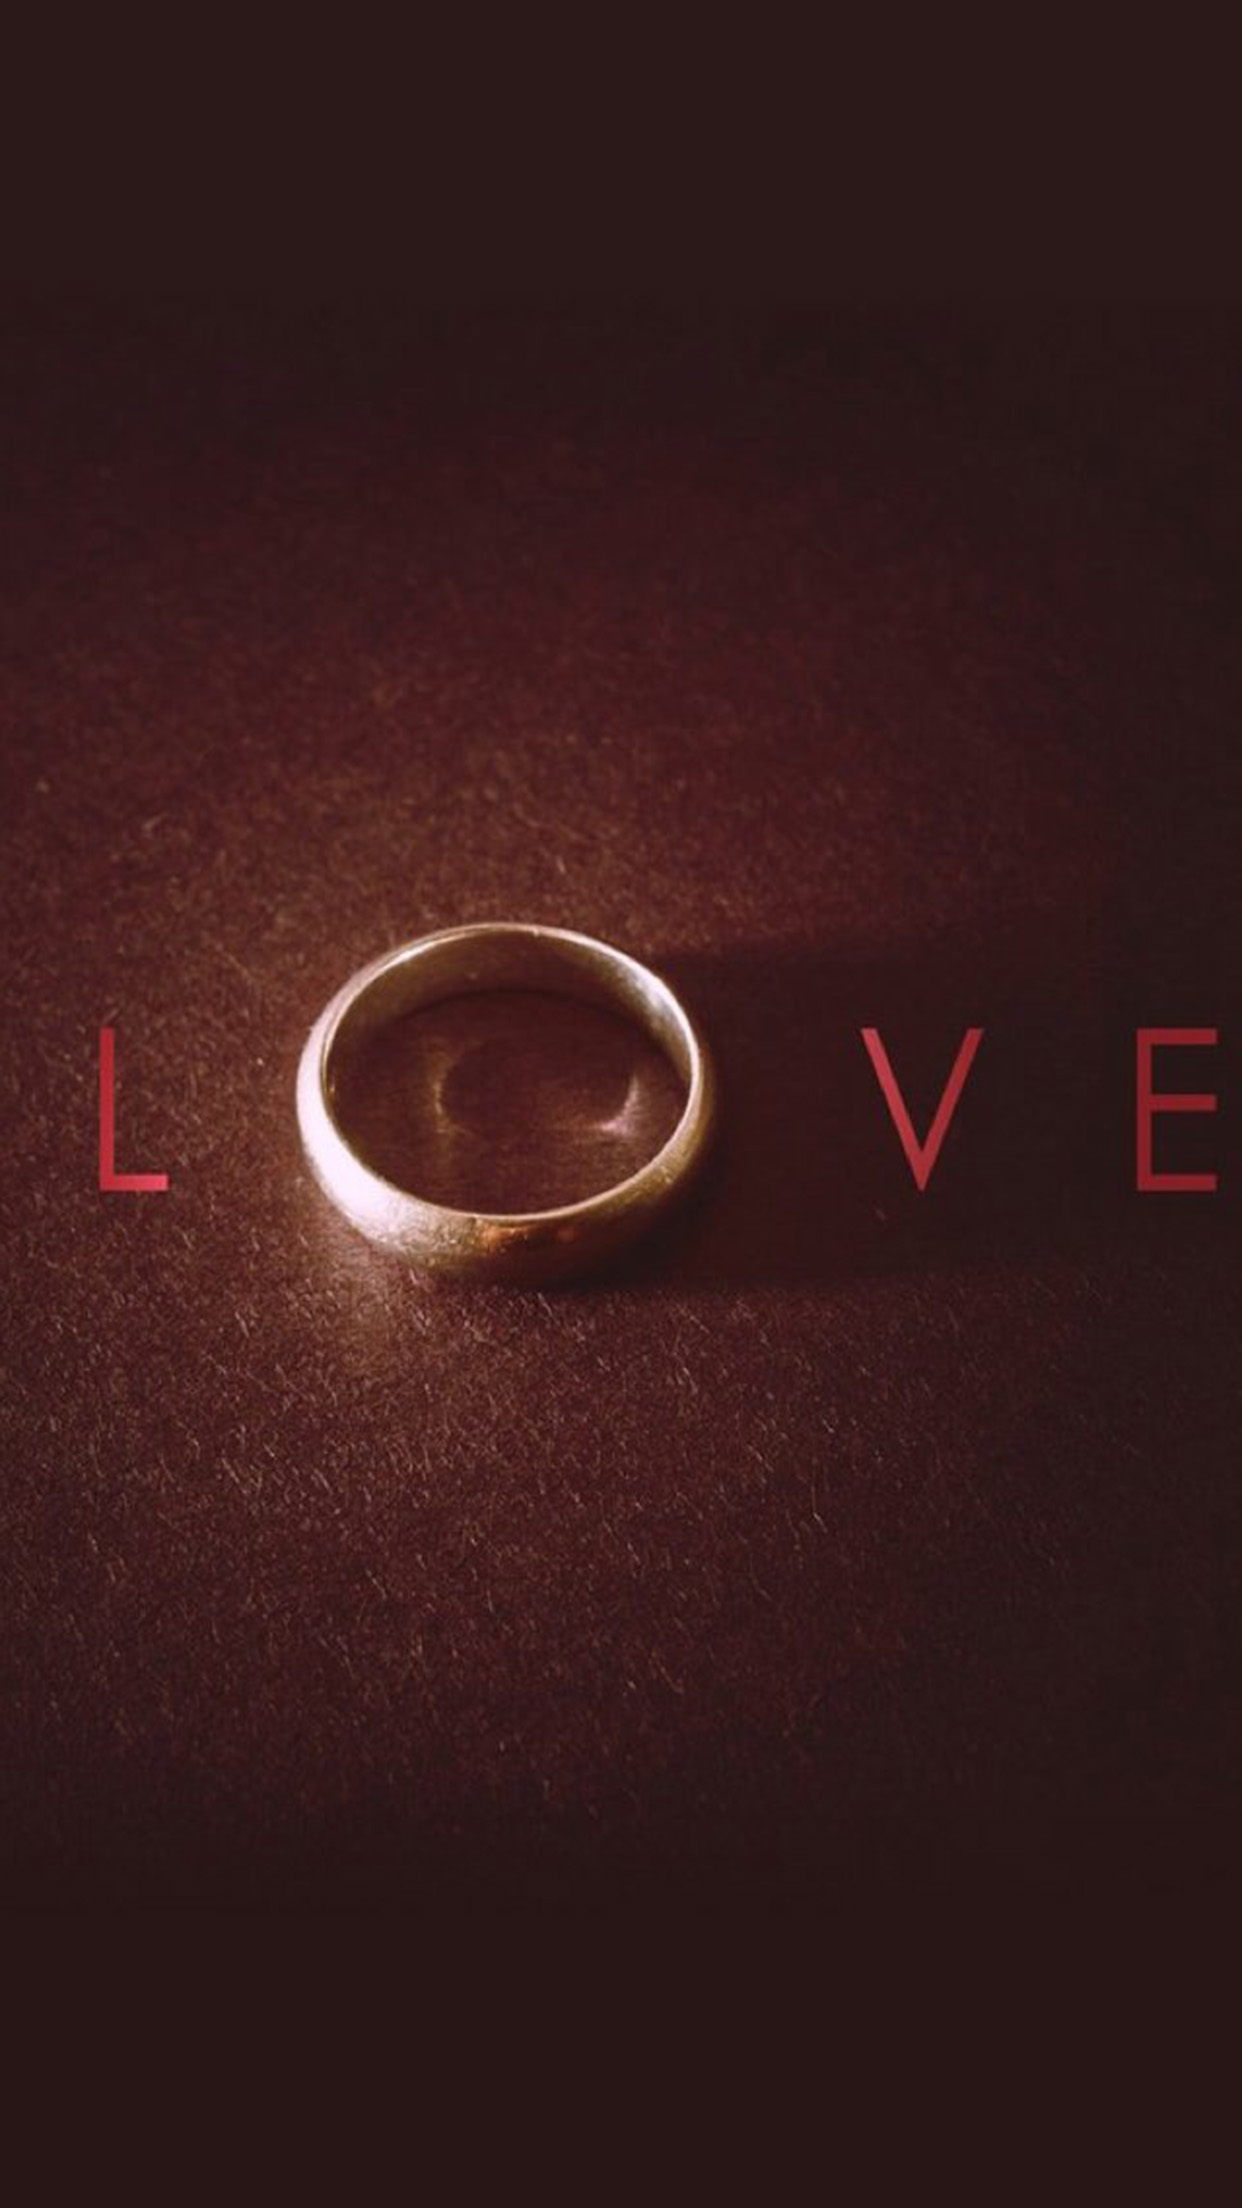 Love Love 2 3Wallpapers iPhone Parallax Love 2